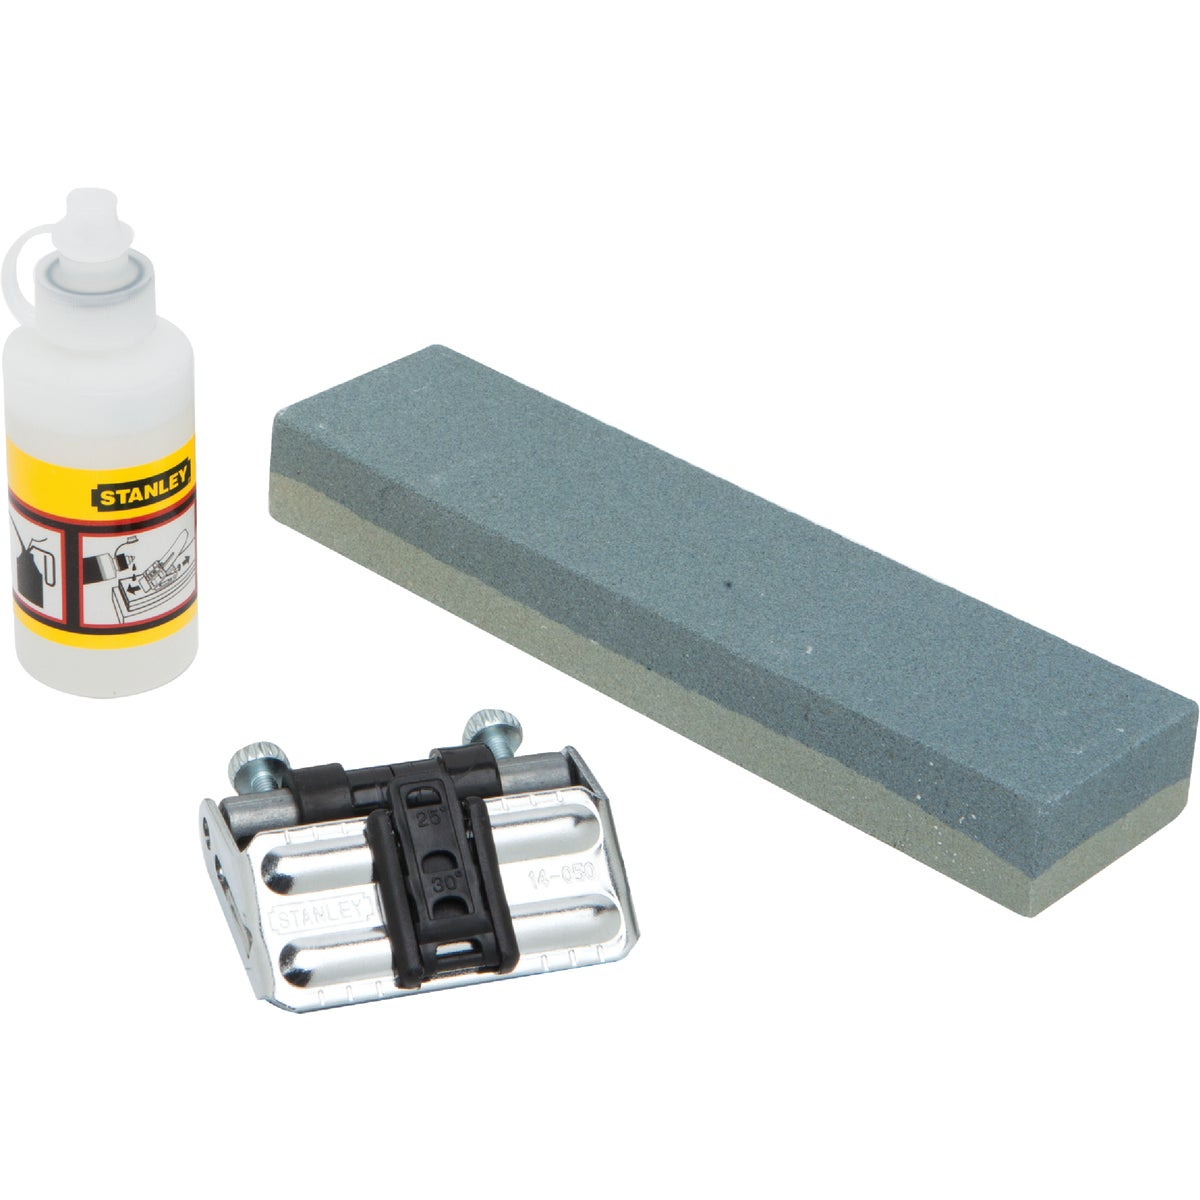 CHISEL SHARPENING KIT - 16-050 by Stanley Tools